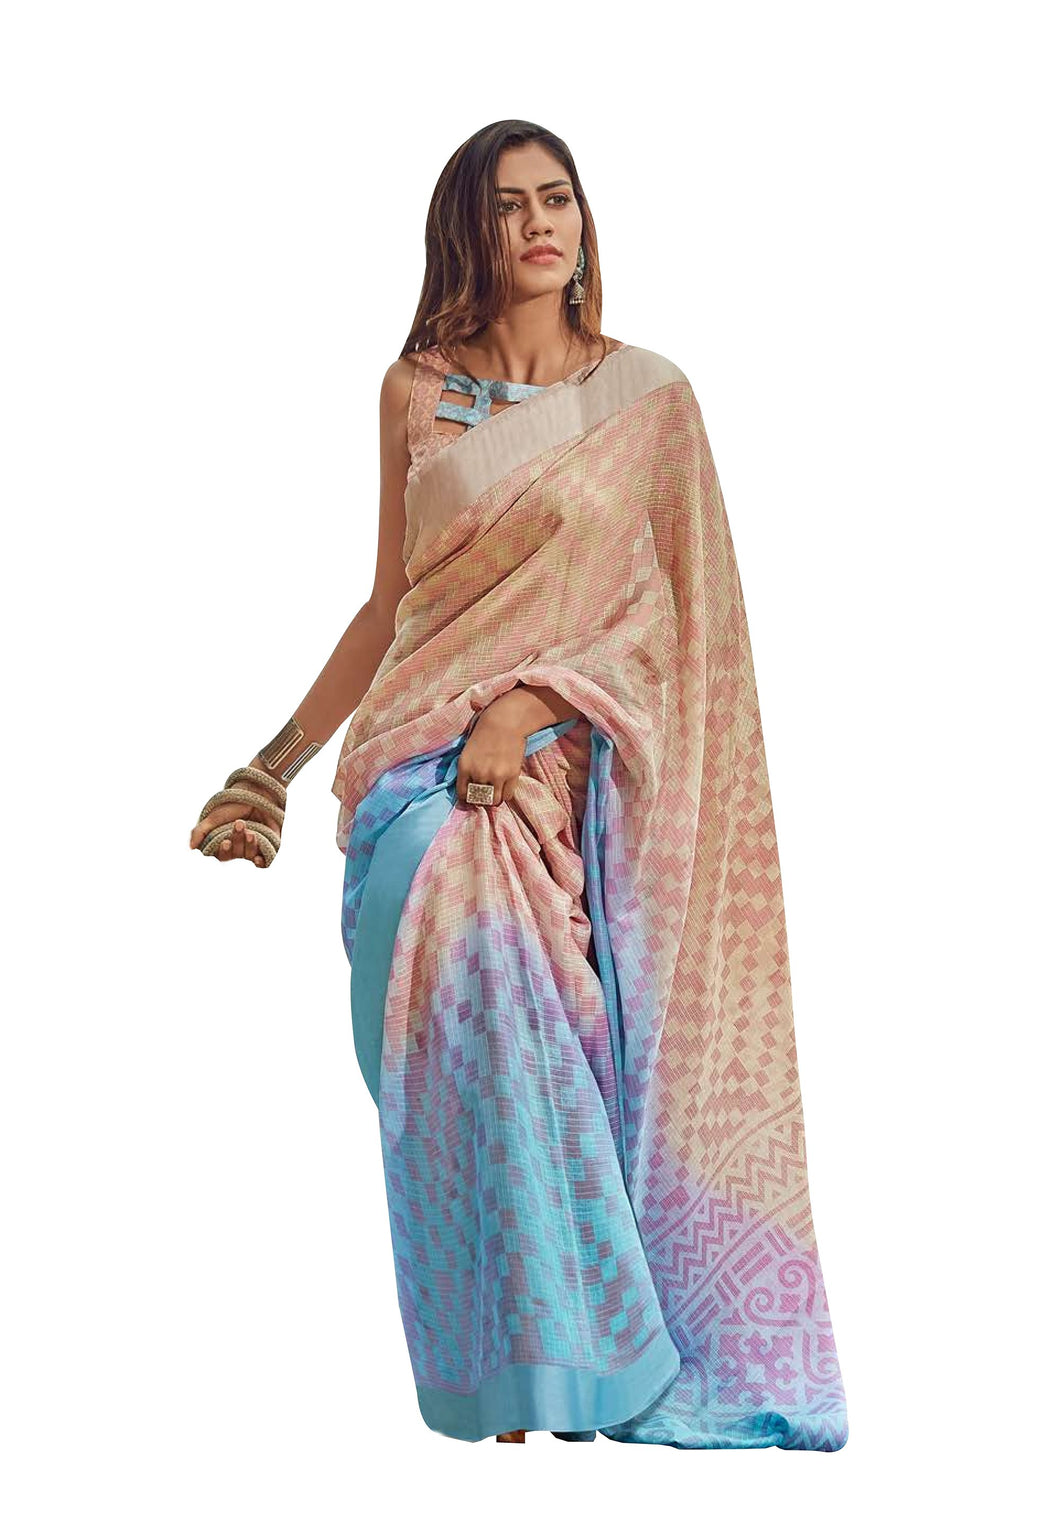 Designer Beige Blue Kota Brasso Cotton Silk Saree ZU05 - Ethnic's By Anvi Creations